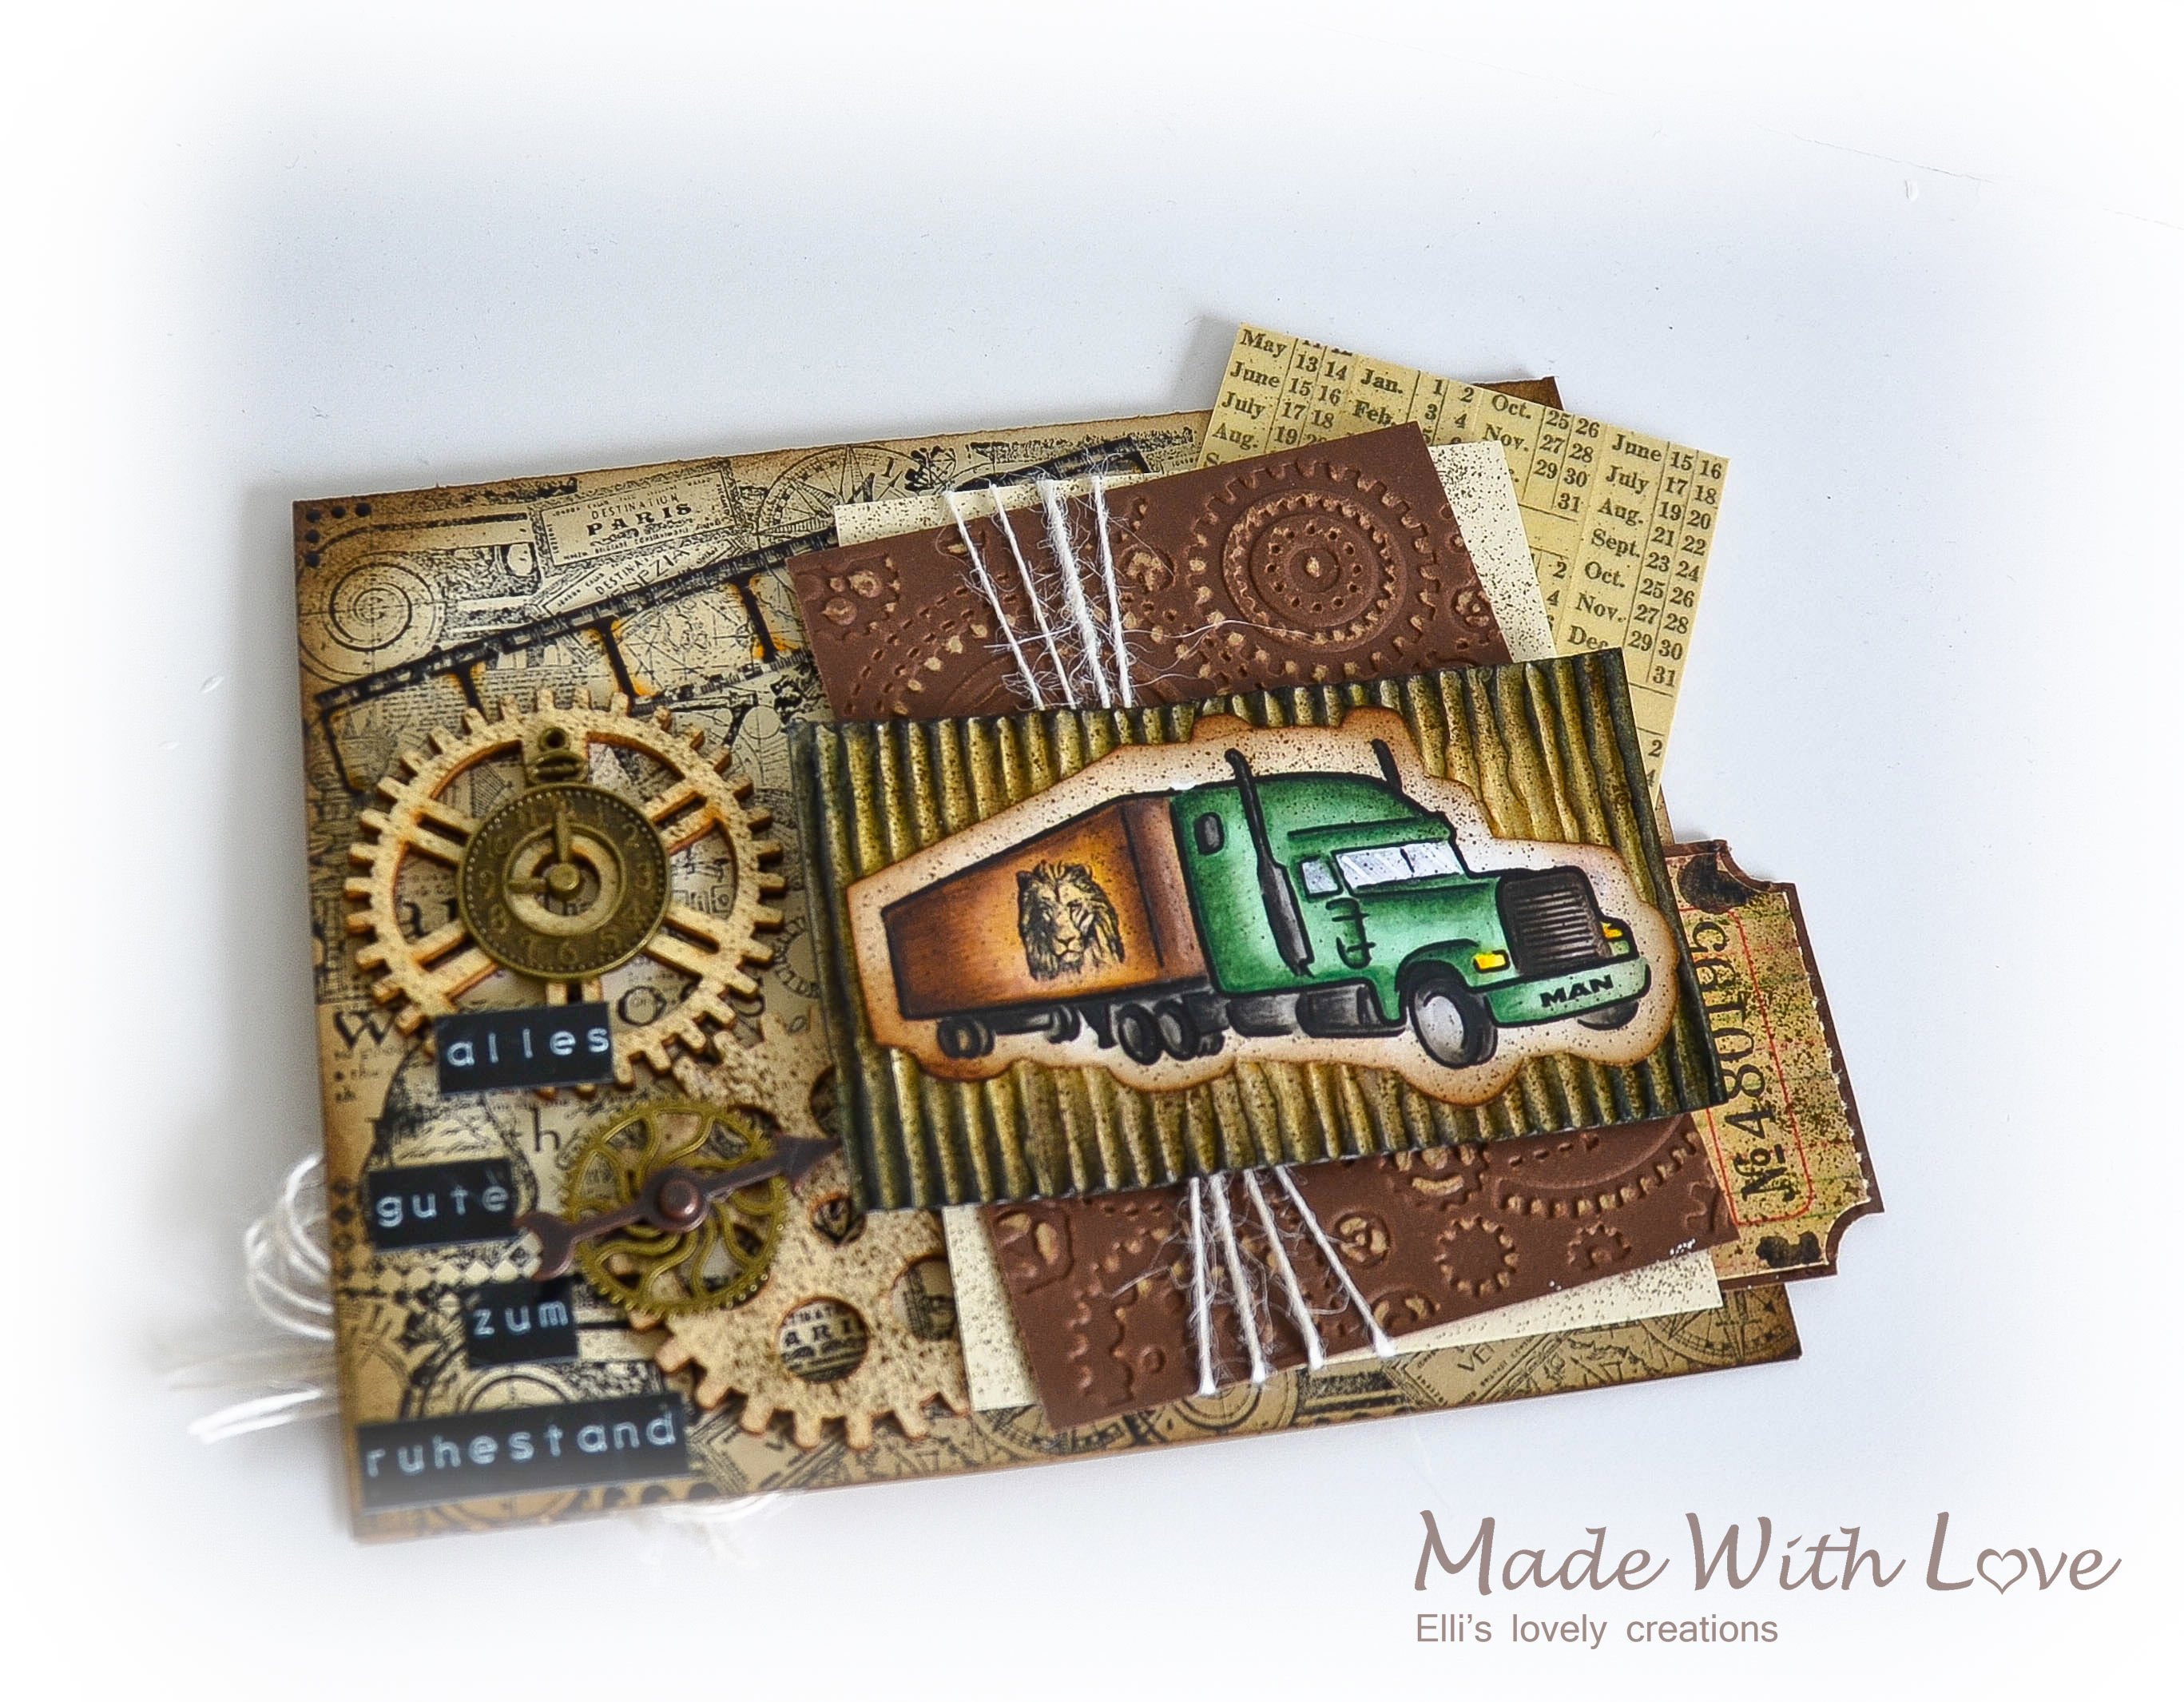 Mixed Media Vintage Steampunk Masculine Card HR 7